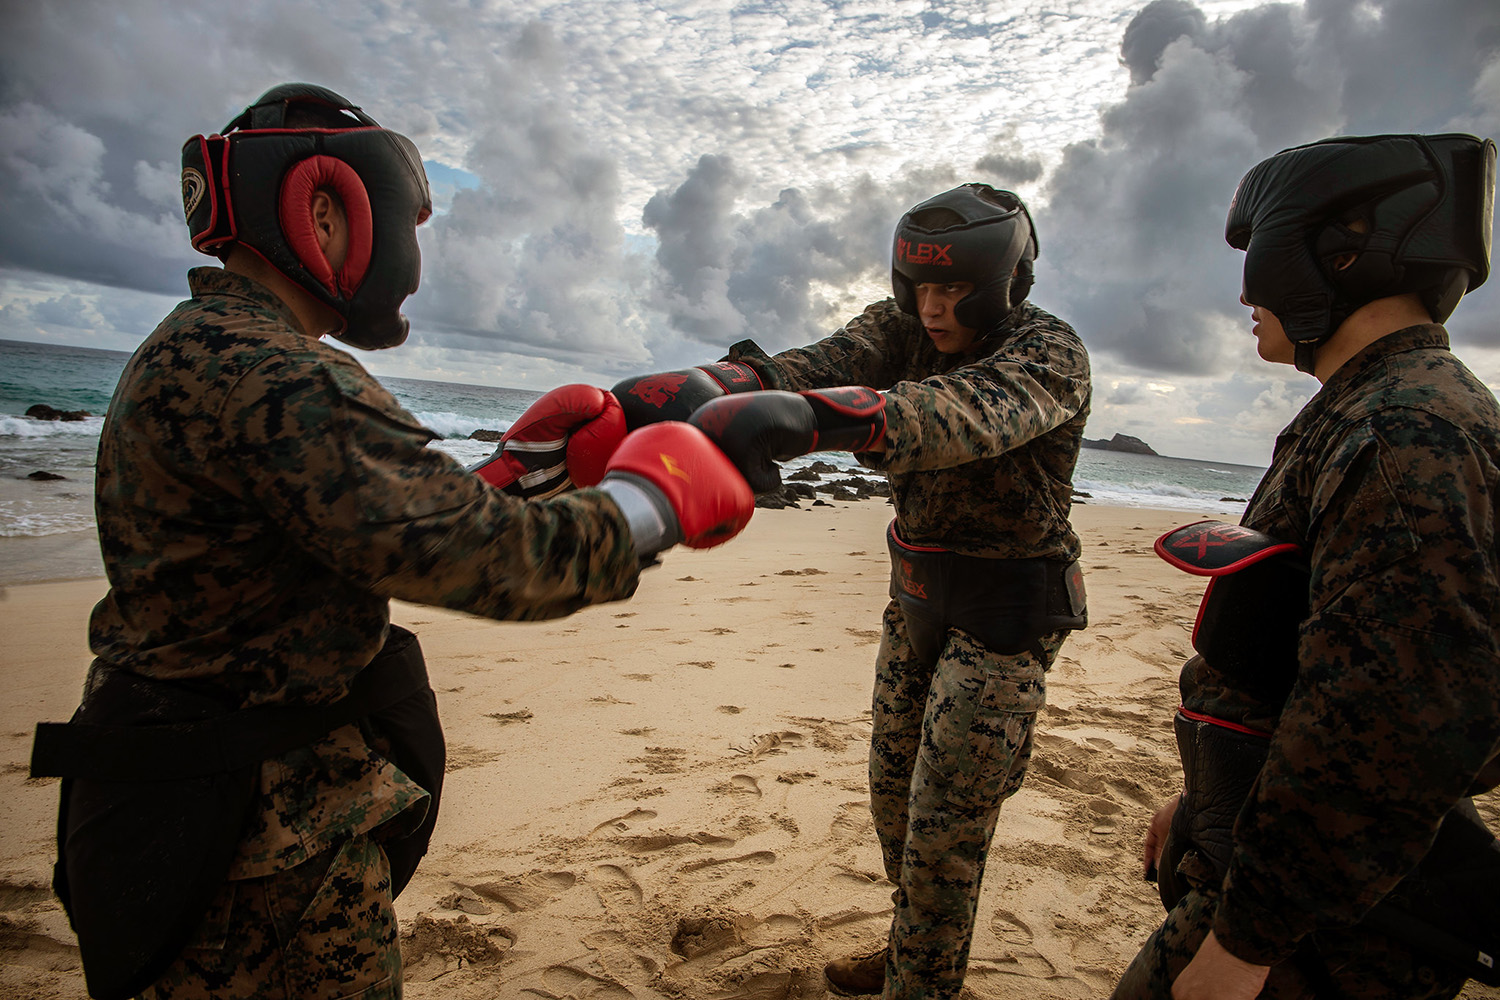 Students with the Marine Martial Arts Instructors Course touch gloves prior to sparring at Marine Corps Base Hawaii, Sept. 12, 2019. (Cpl. Matthew Kirk/Marine Corps)